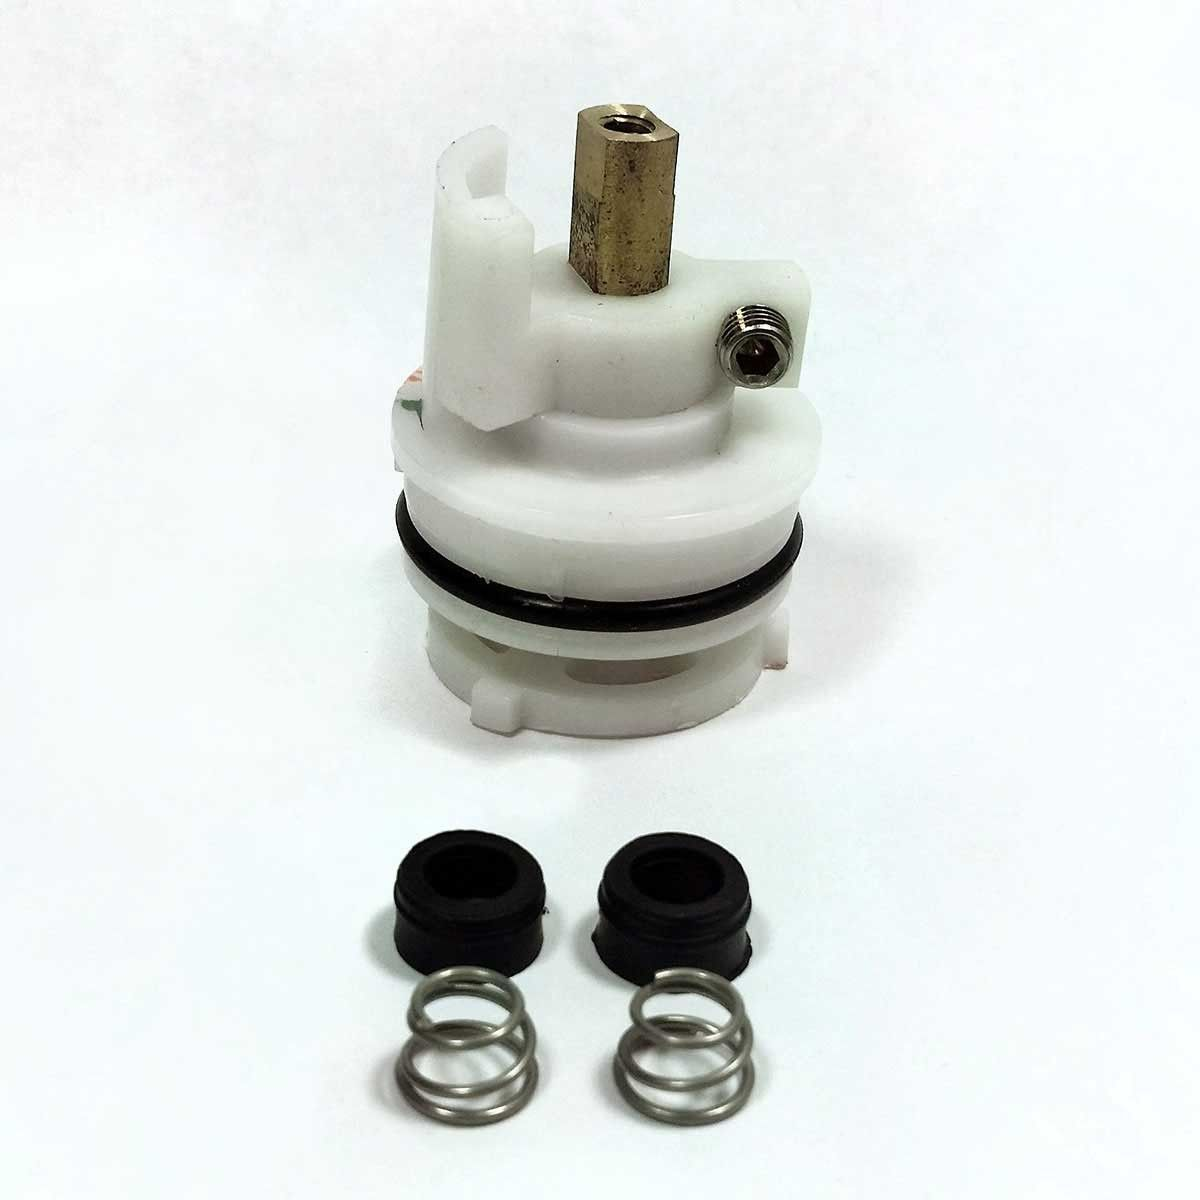 Wp Replacement For Delta Faucet Rp1991 Stem Unit With Rp4993 Seats